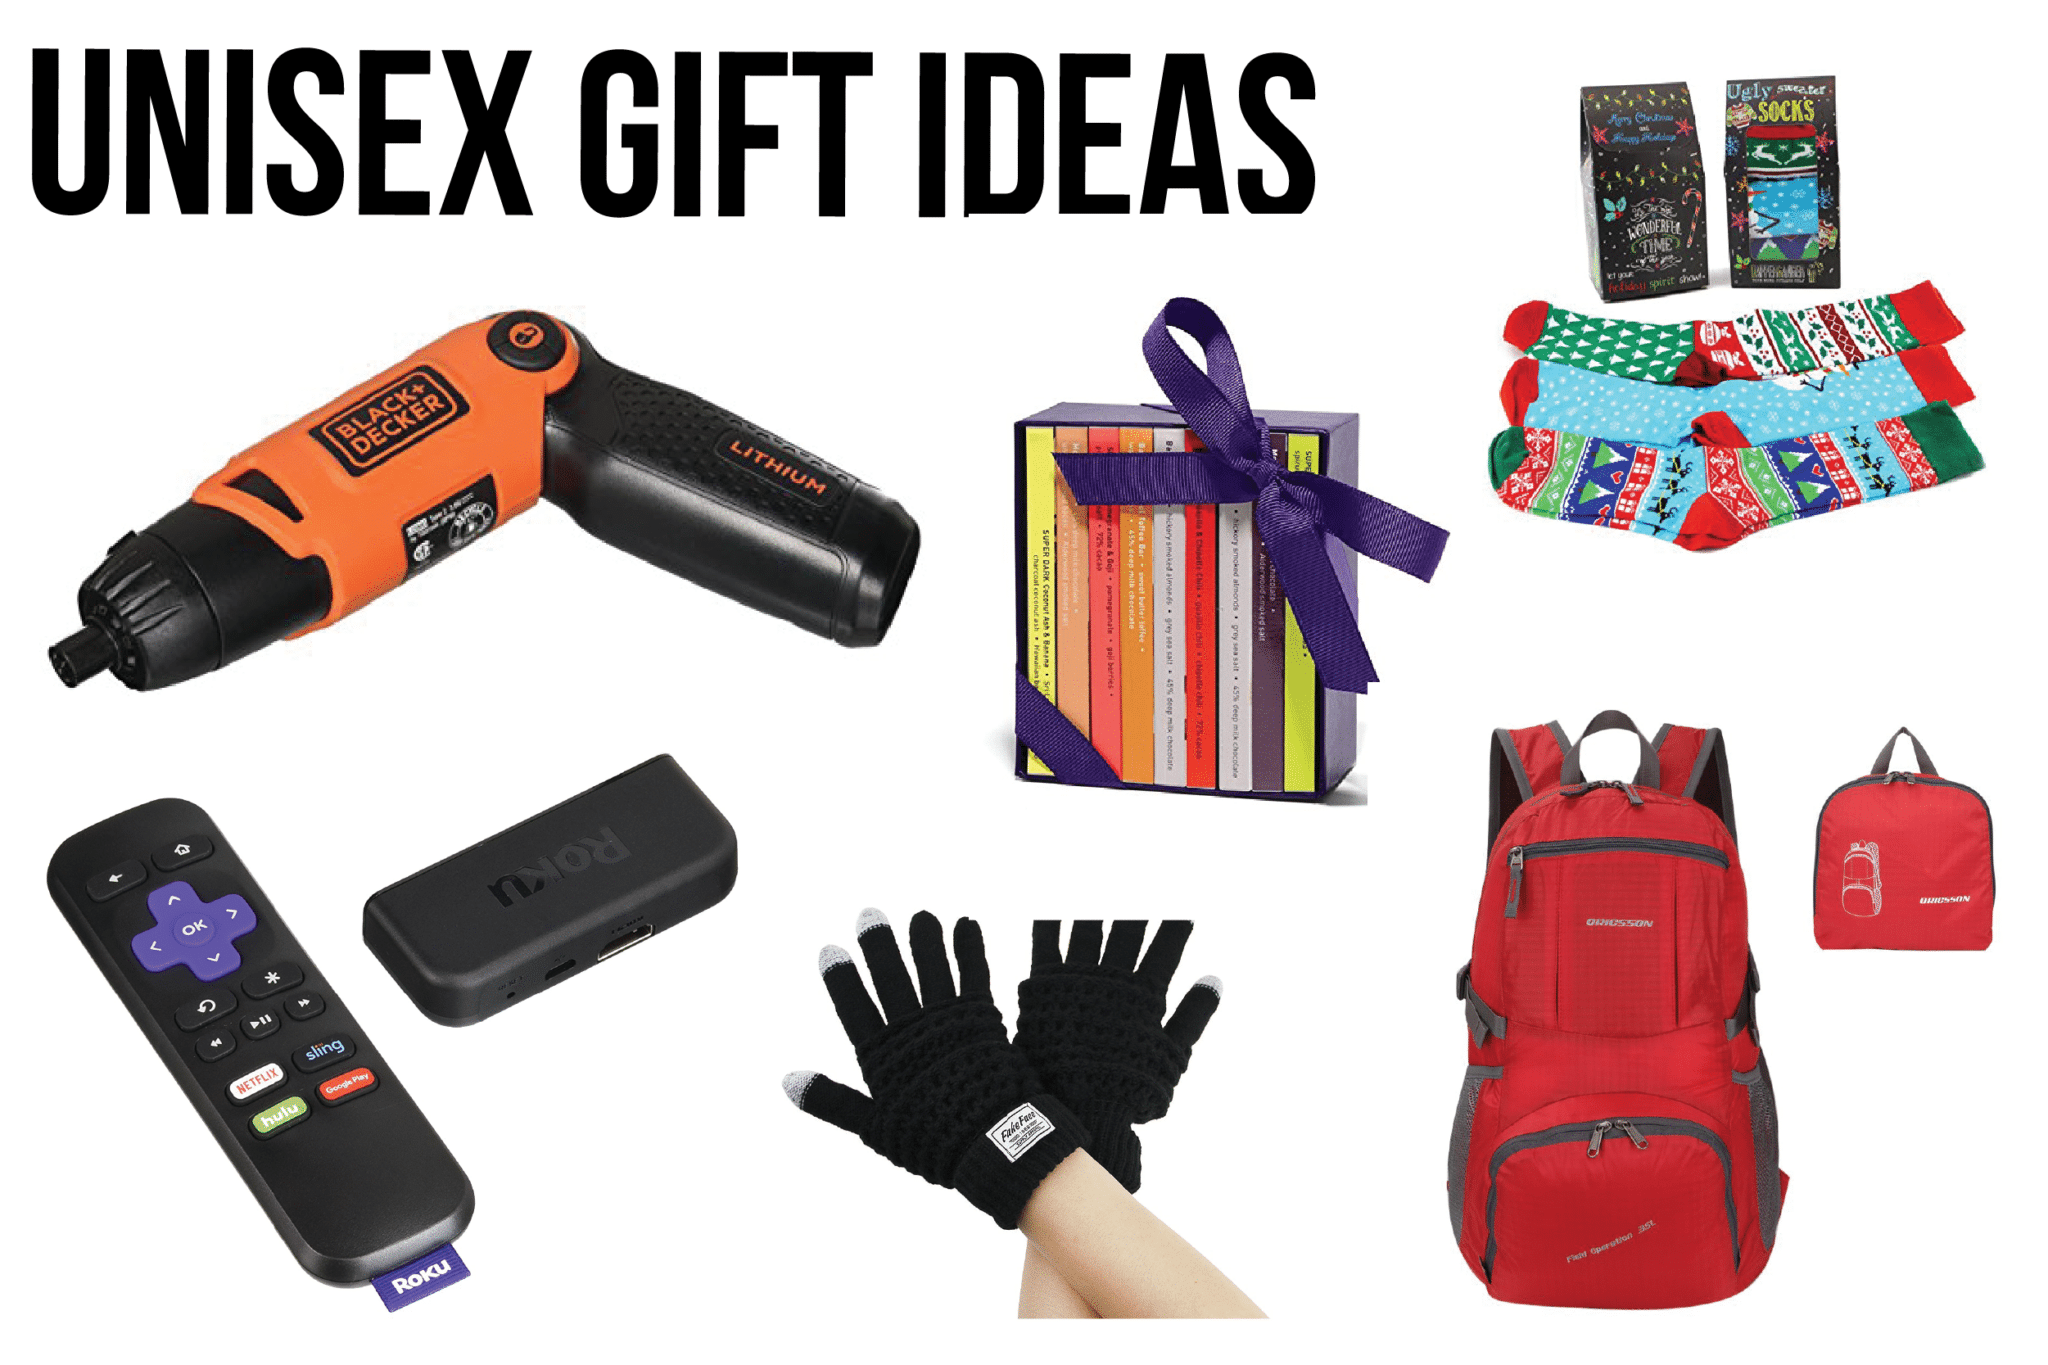 Unisex and neutral gift exchange gift ideas including some great white elephant gifts and white elephant gift ideas